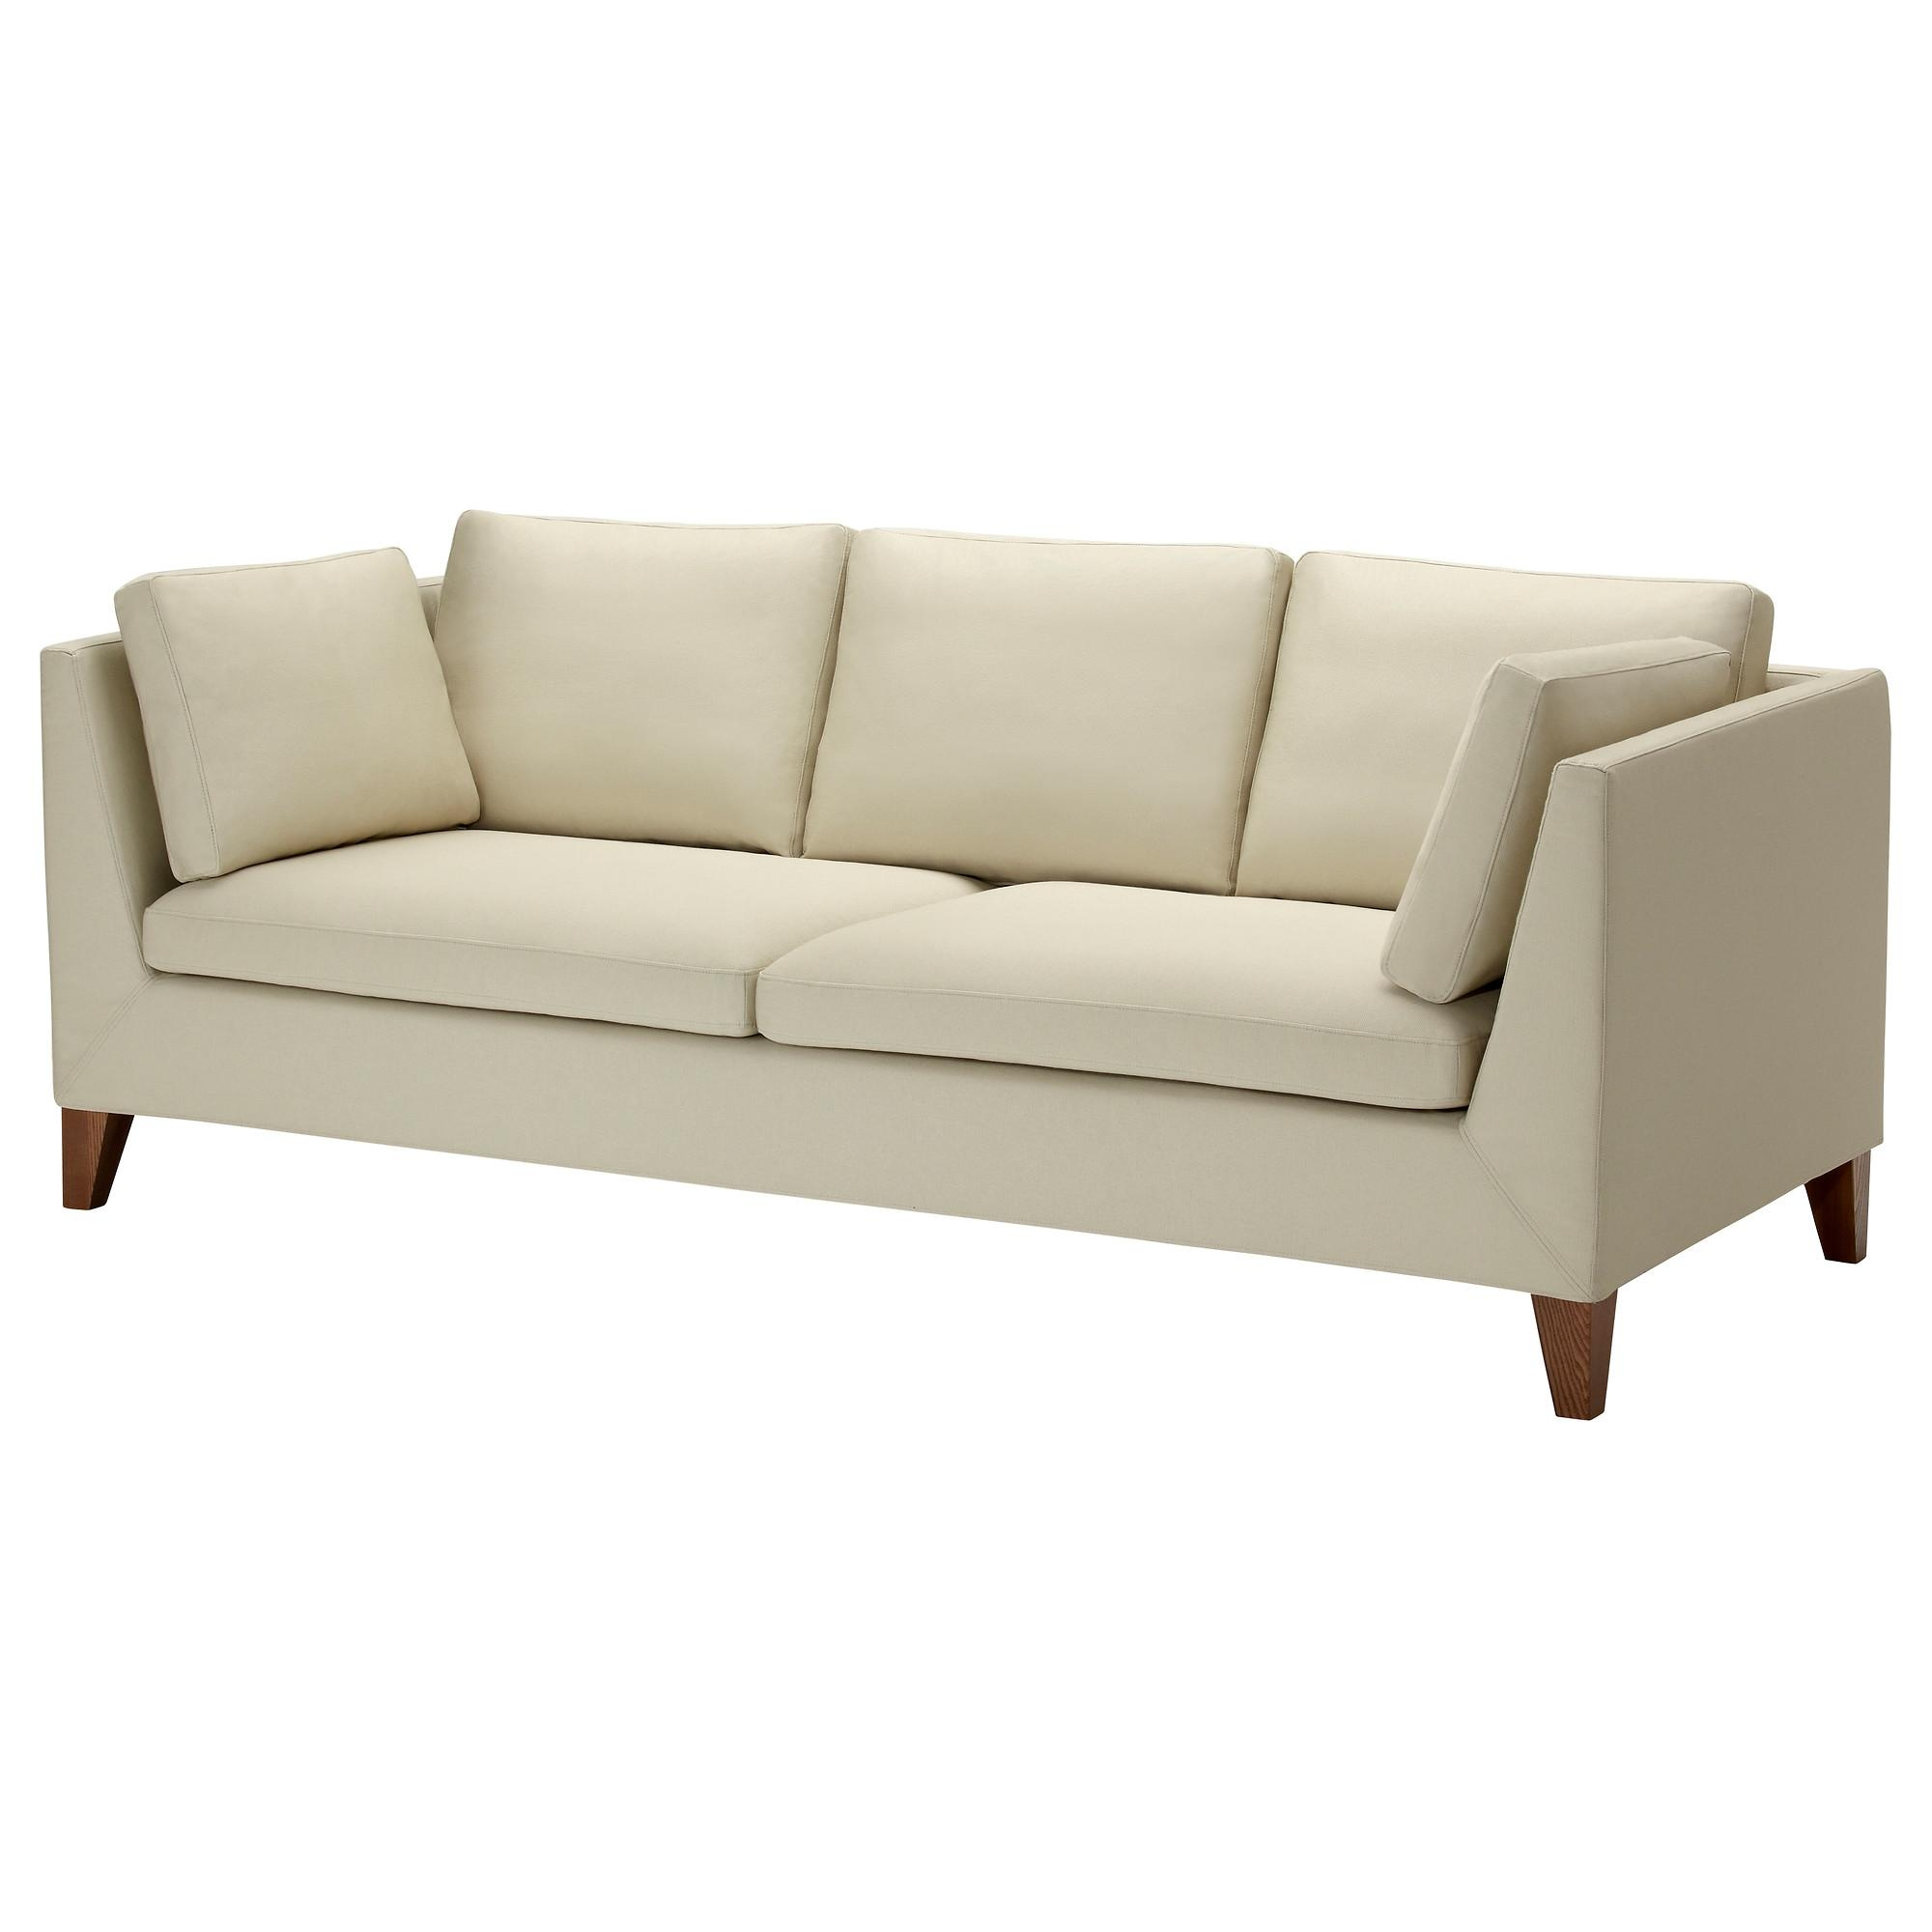 Narrow Depth Sofa | Sofa Gallery | Kengire Within Narrow Depth Sofas (Image 8 of 20)